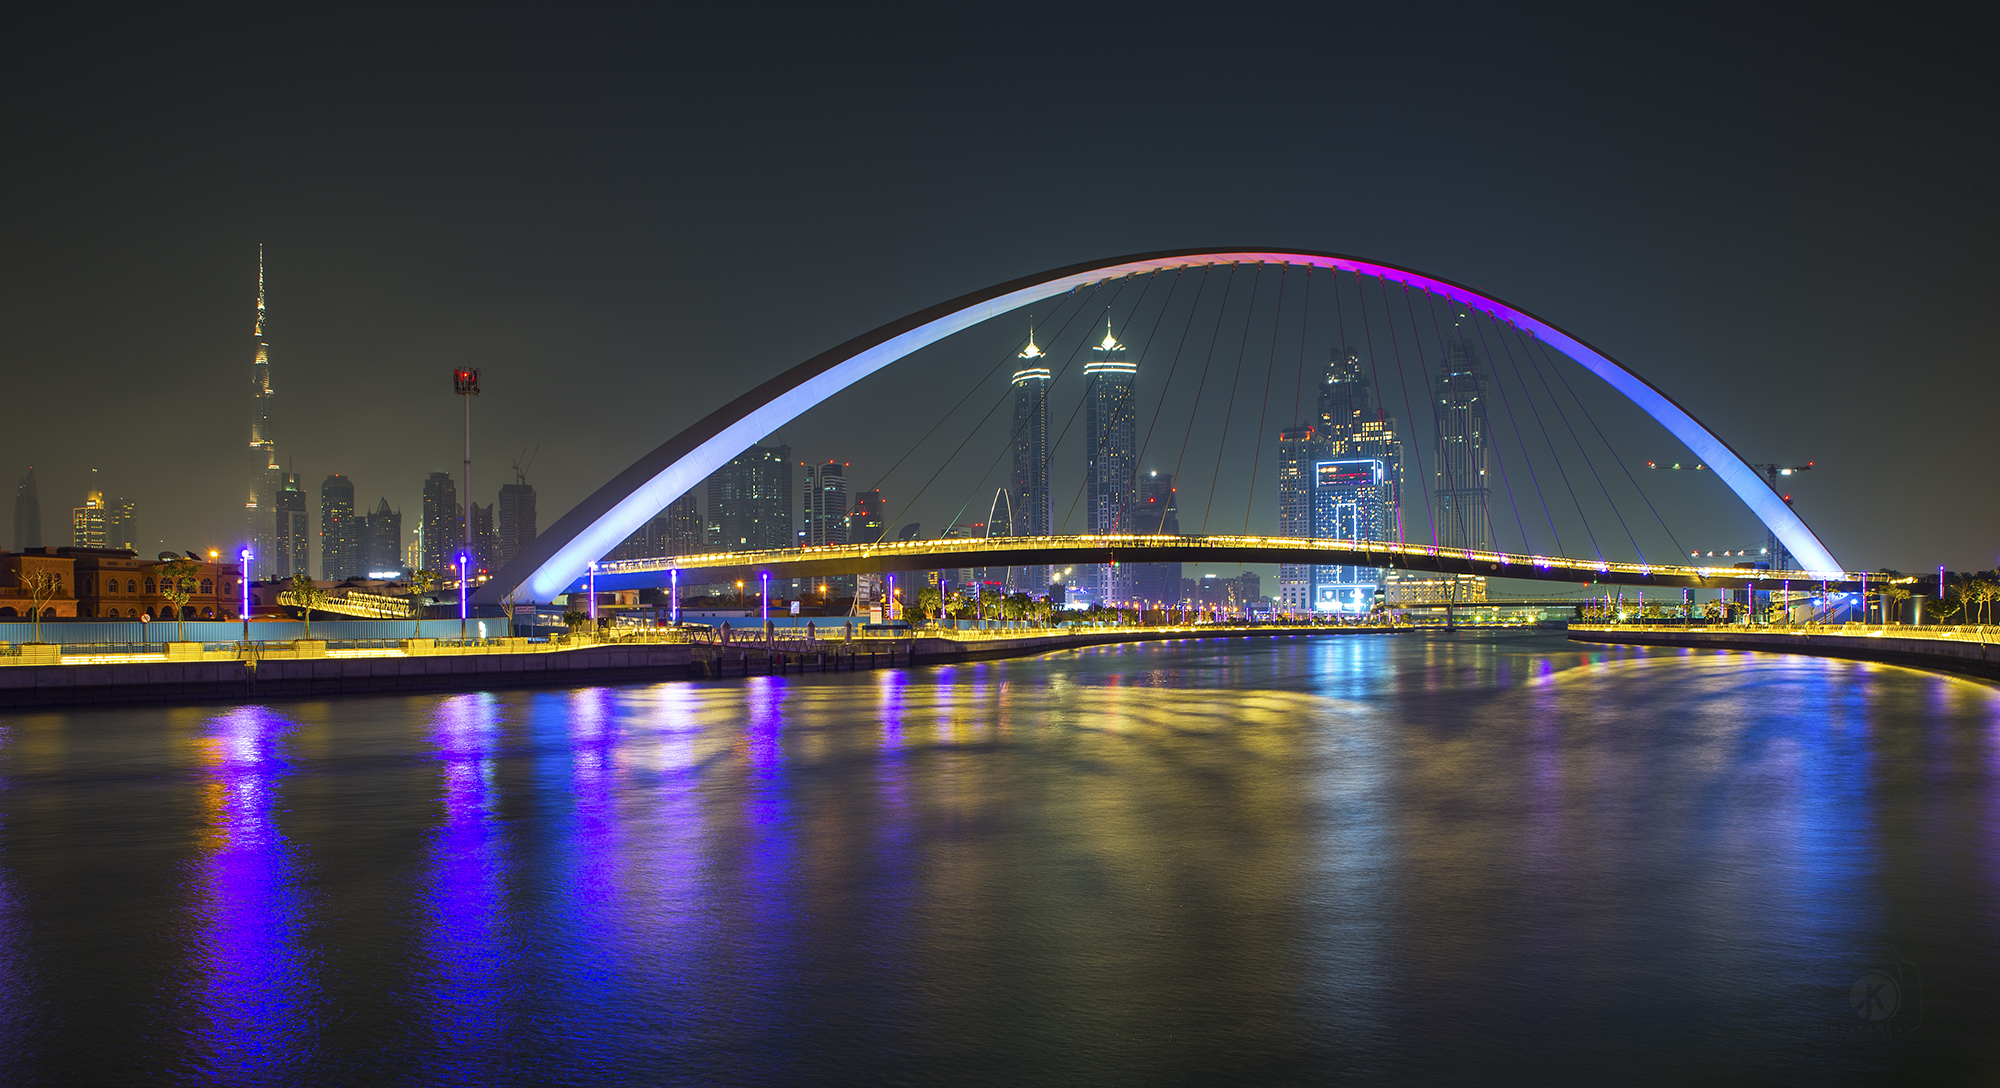 Dubai Water Canal, United Arab Emirates